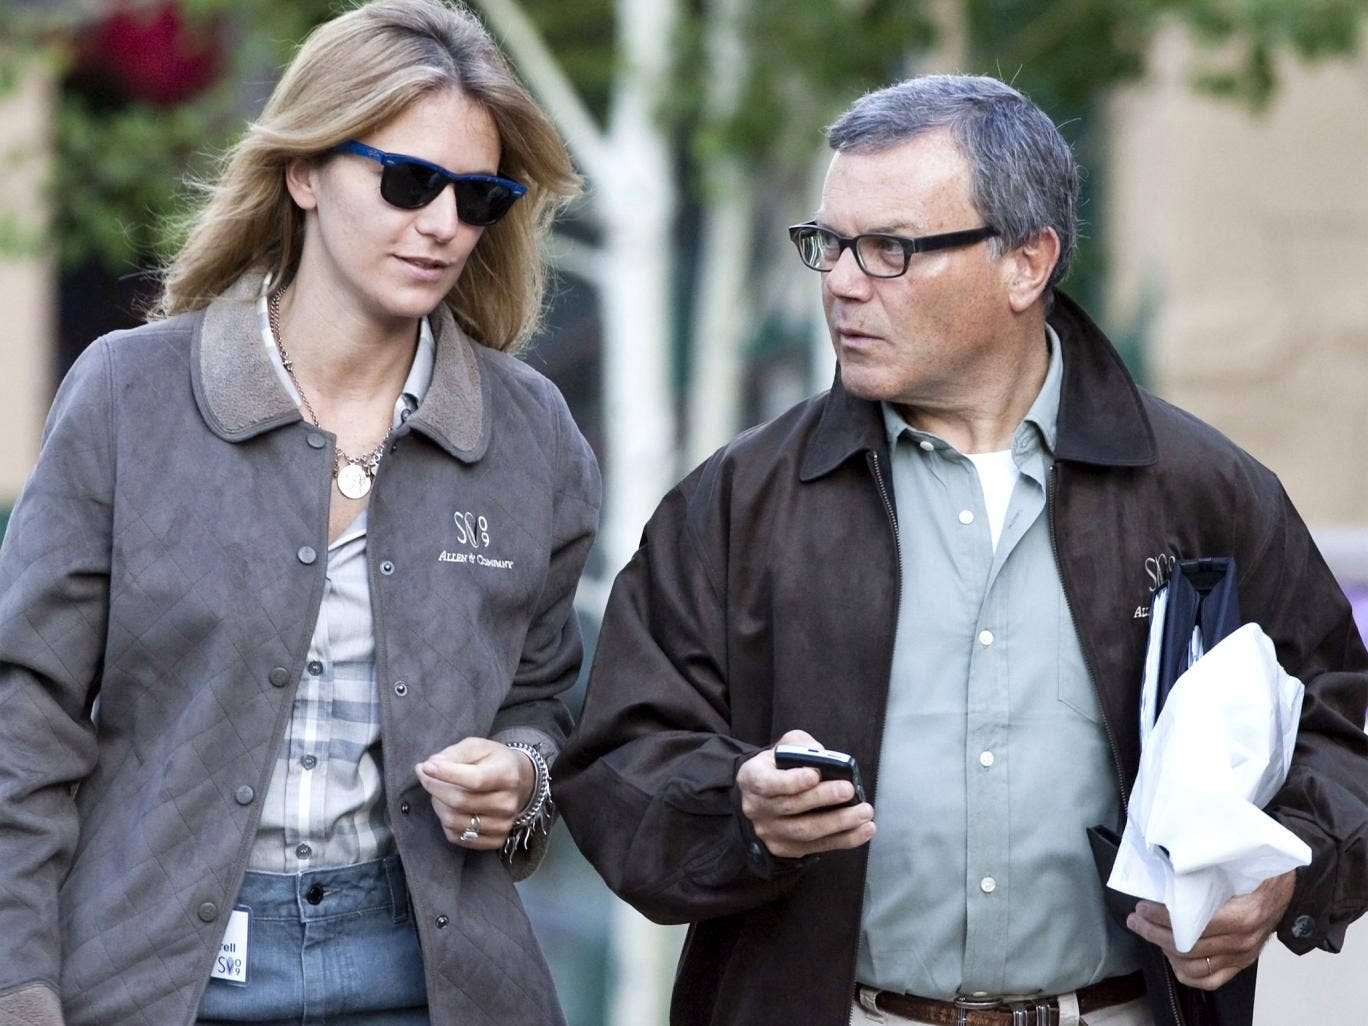 Sir Martin Sorrell pictured with his wife, Cristiana Falcone Sorrell